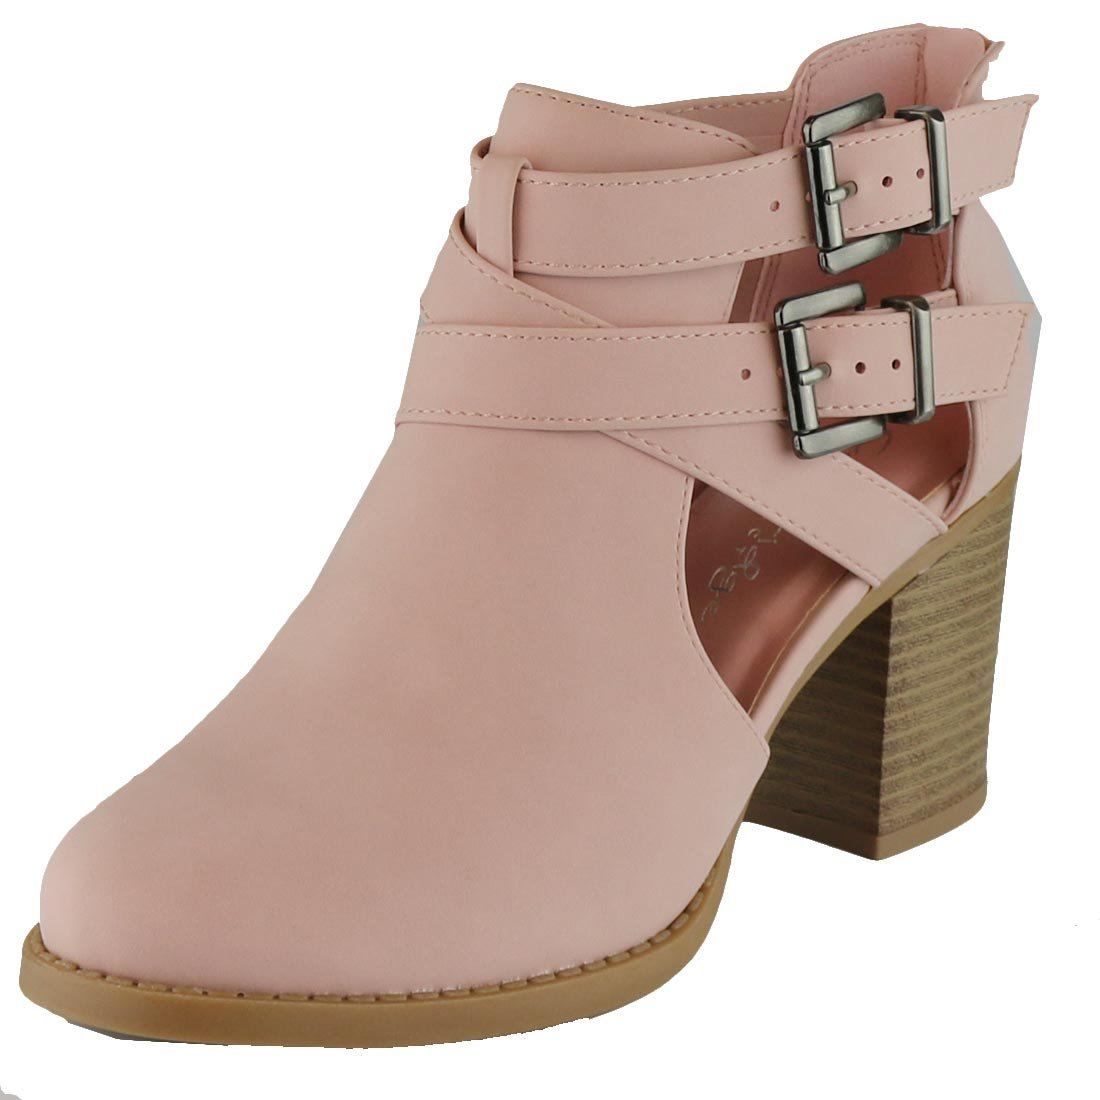 Cambridge Select Women's Side Cut Out Buckle Chunky Stacked Heel Ankle Bootie (8 B(M) US, Pink NBPU)